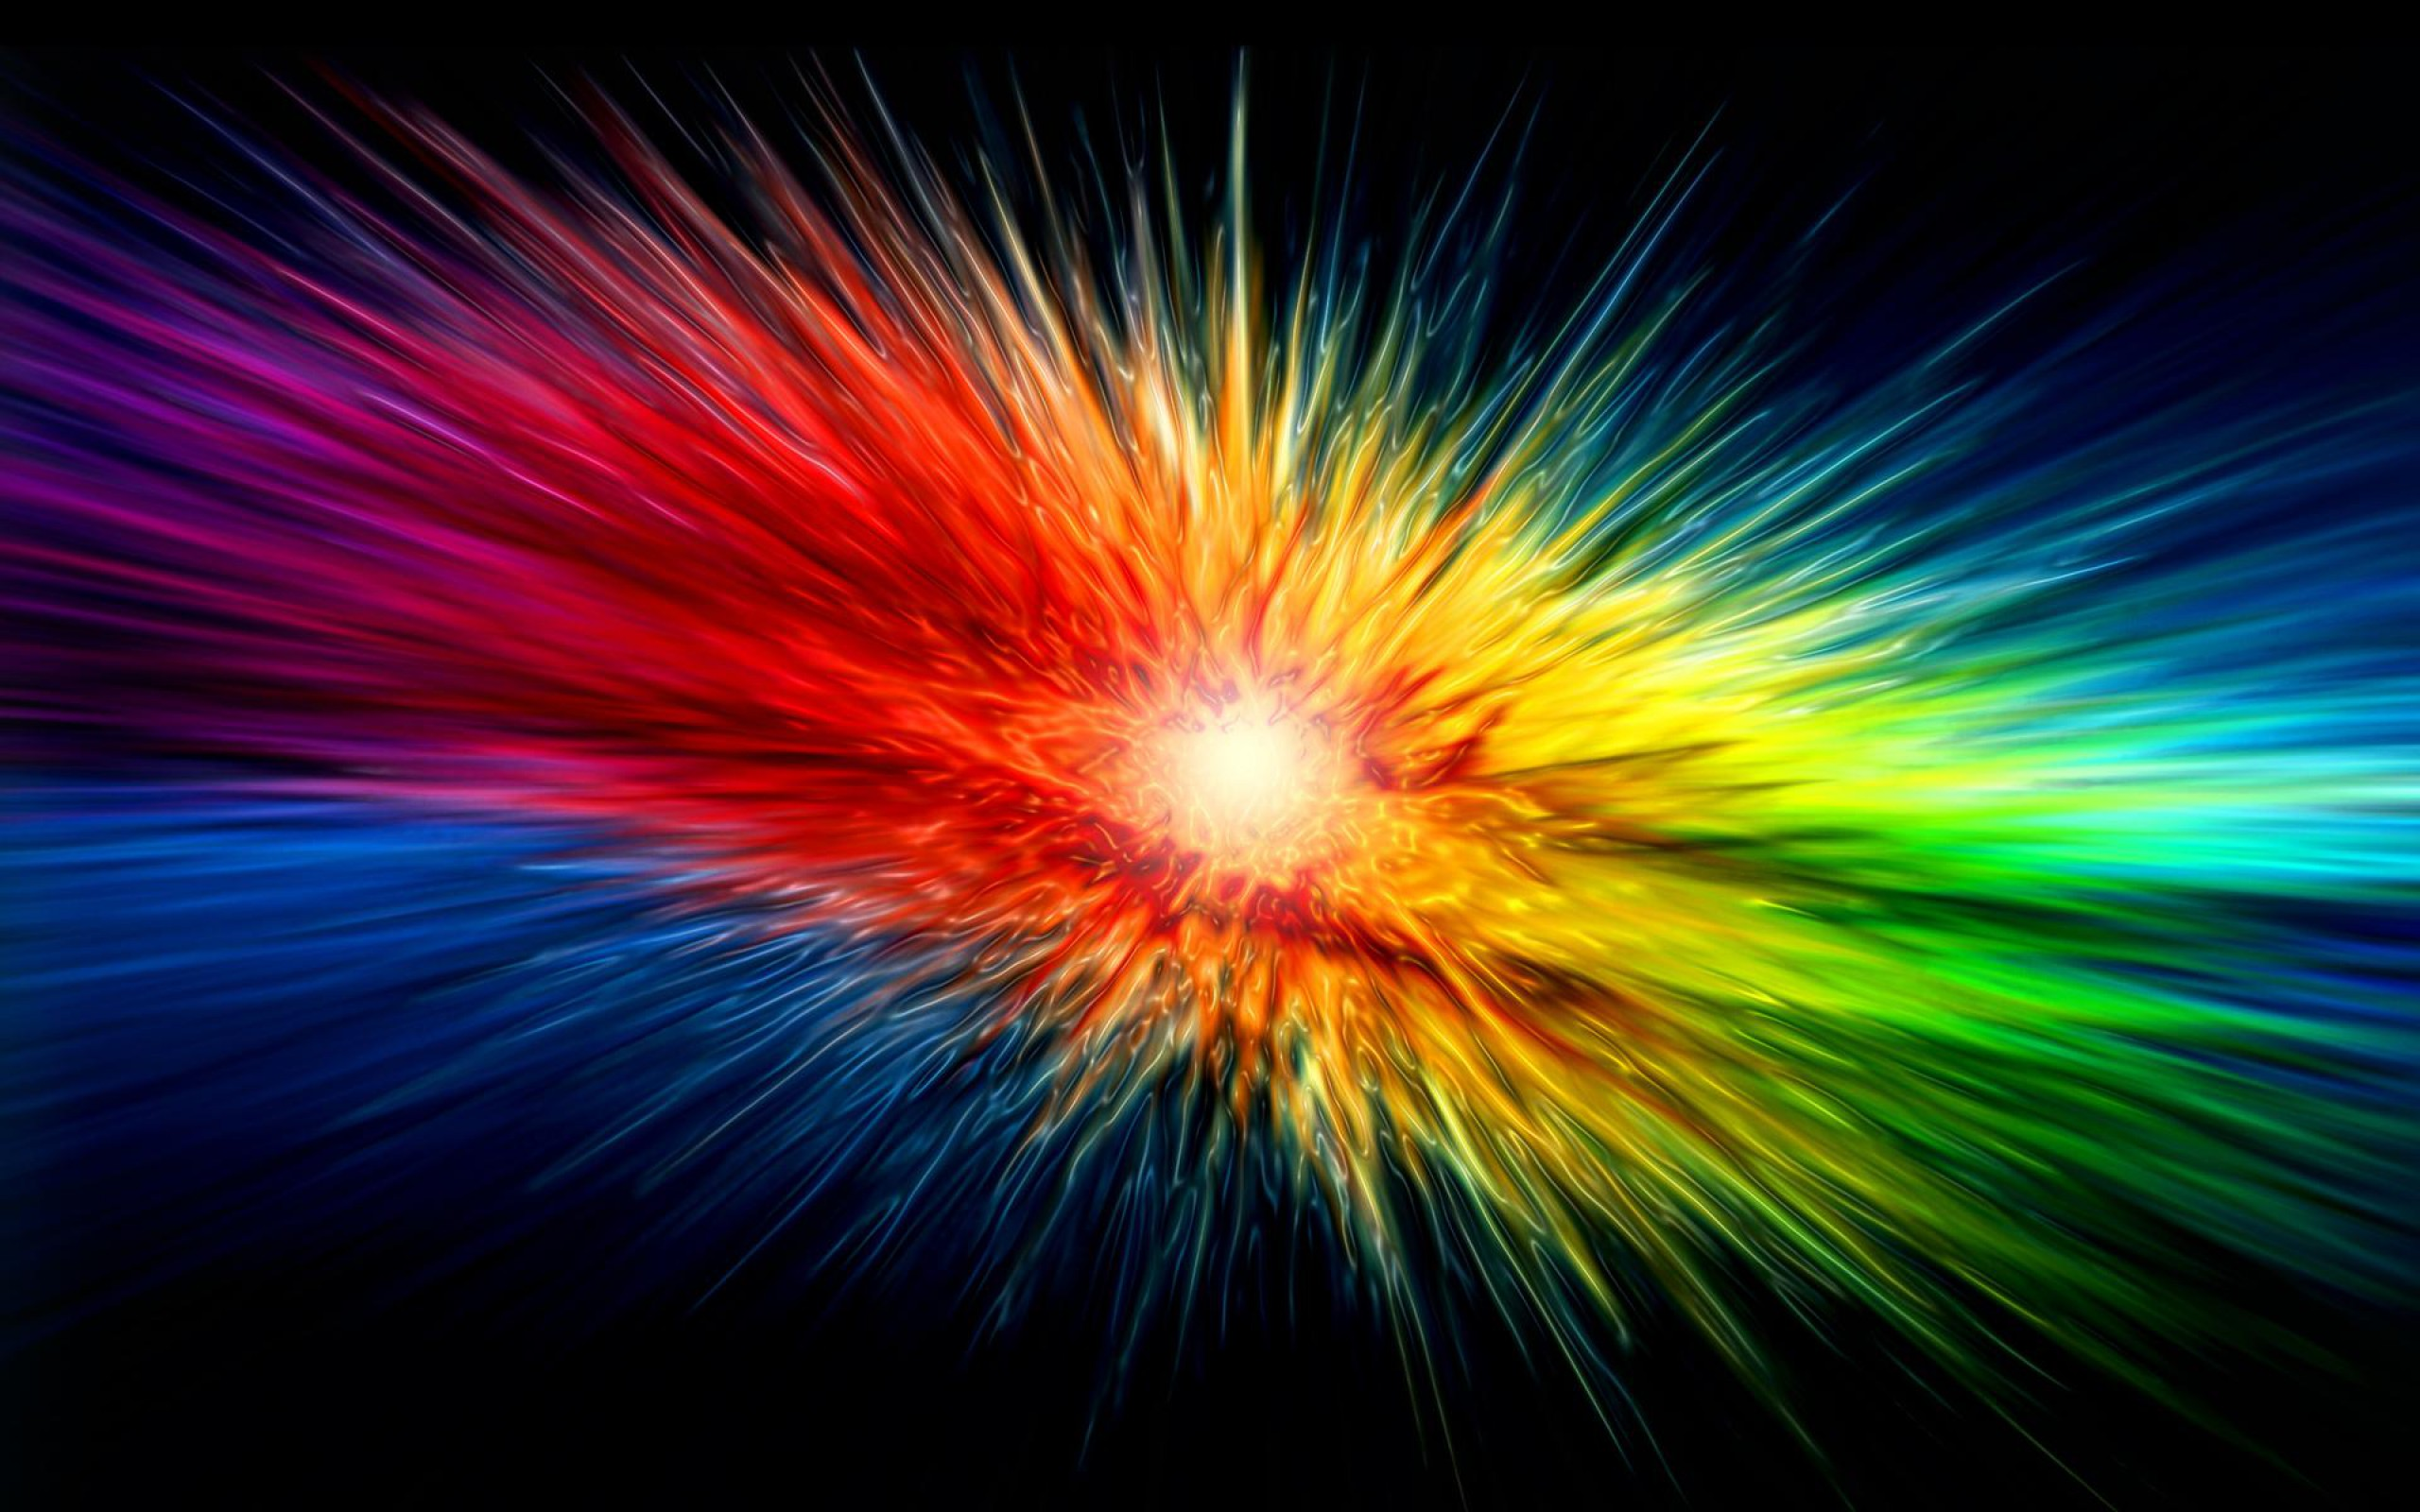 abstract colorful colorful explosion wallpaper 2560x1600